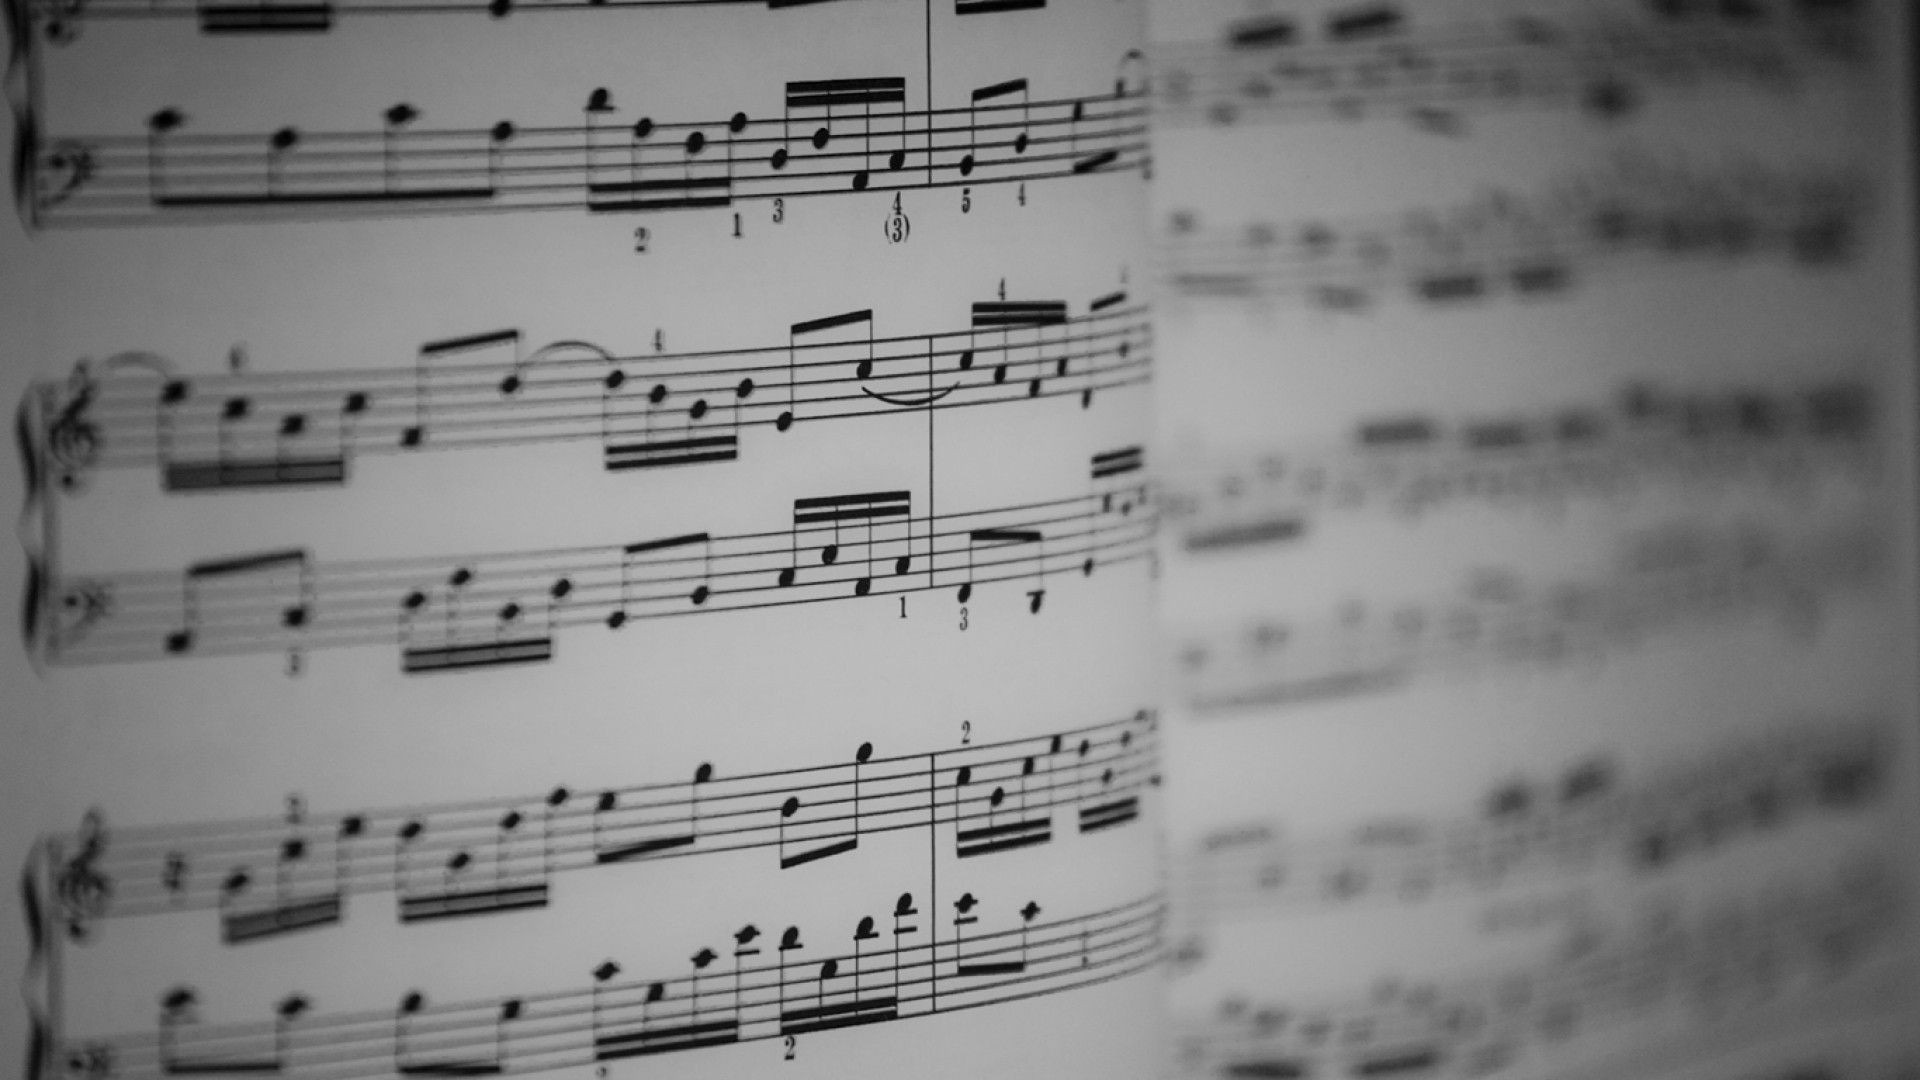 Sheet Music Background Download Free Awesome Full Hd HD Wallpapers Download Free Images Wallpaper [1000image.com]